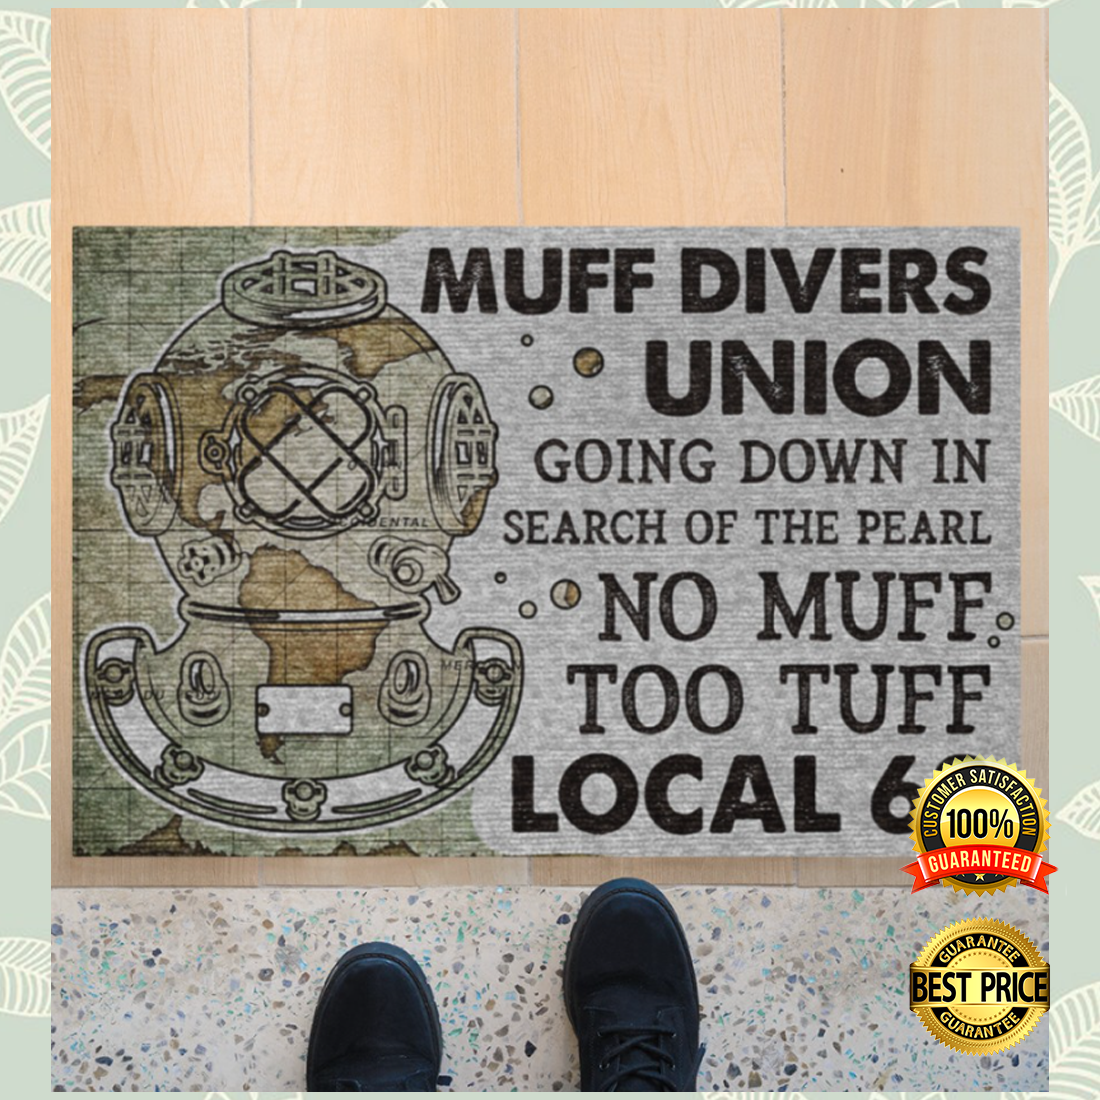 MUFF DIVERS UNION GOING DOWN IN SEARCH OF THE PEARL DOORMAT 6